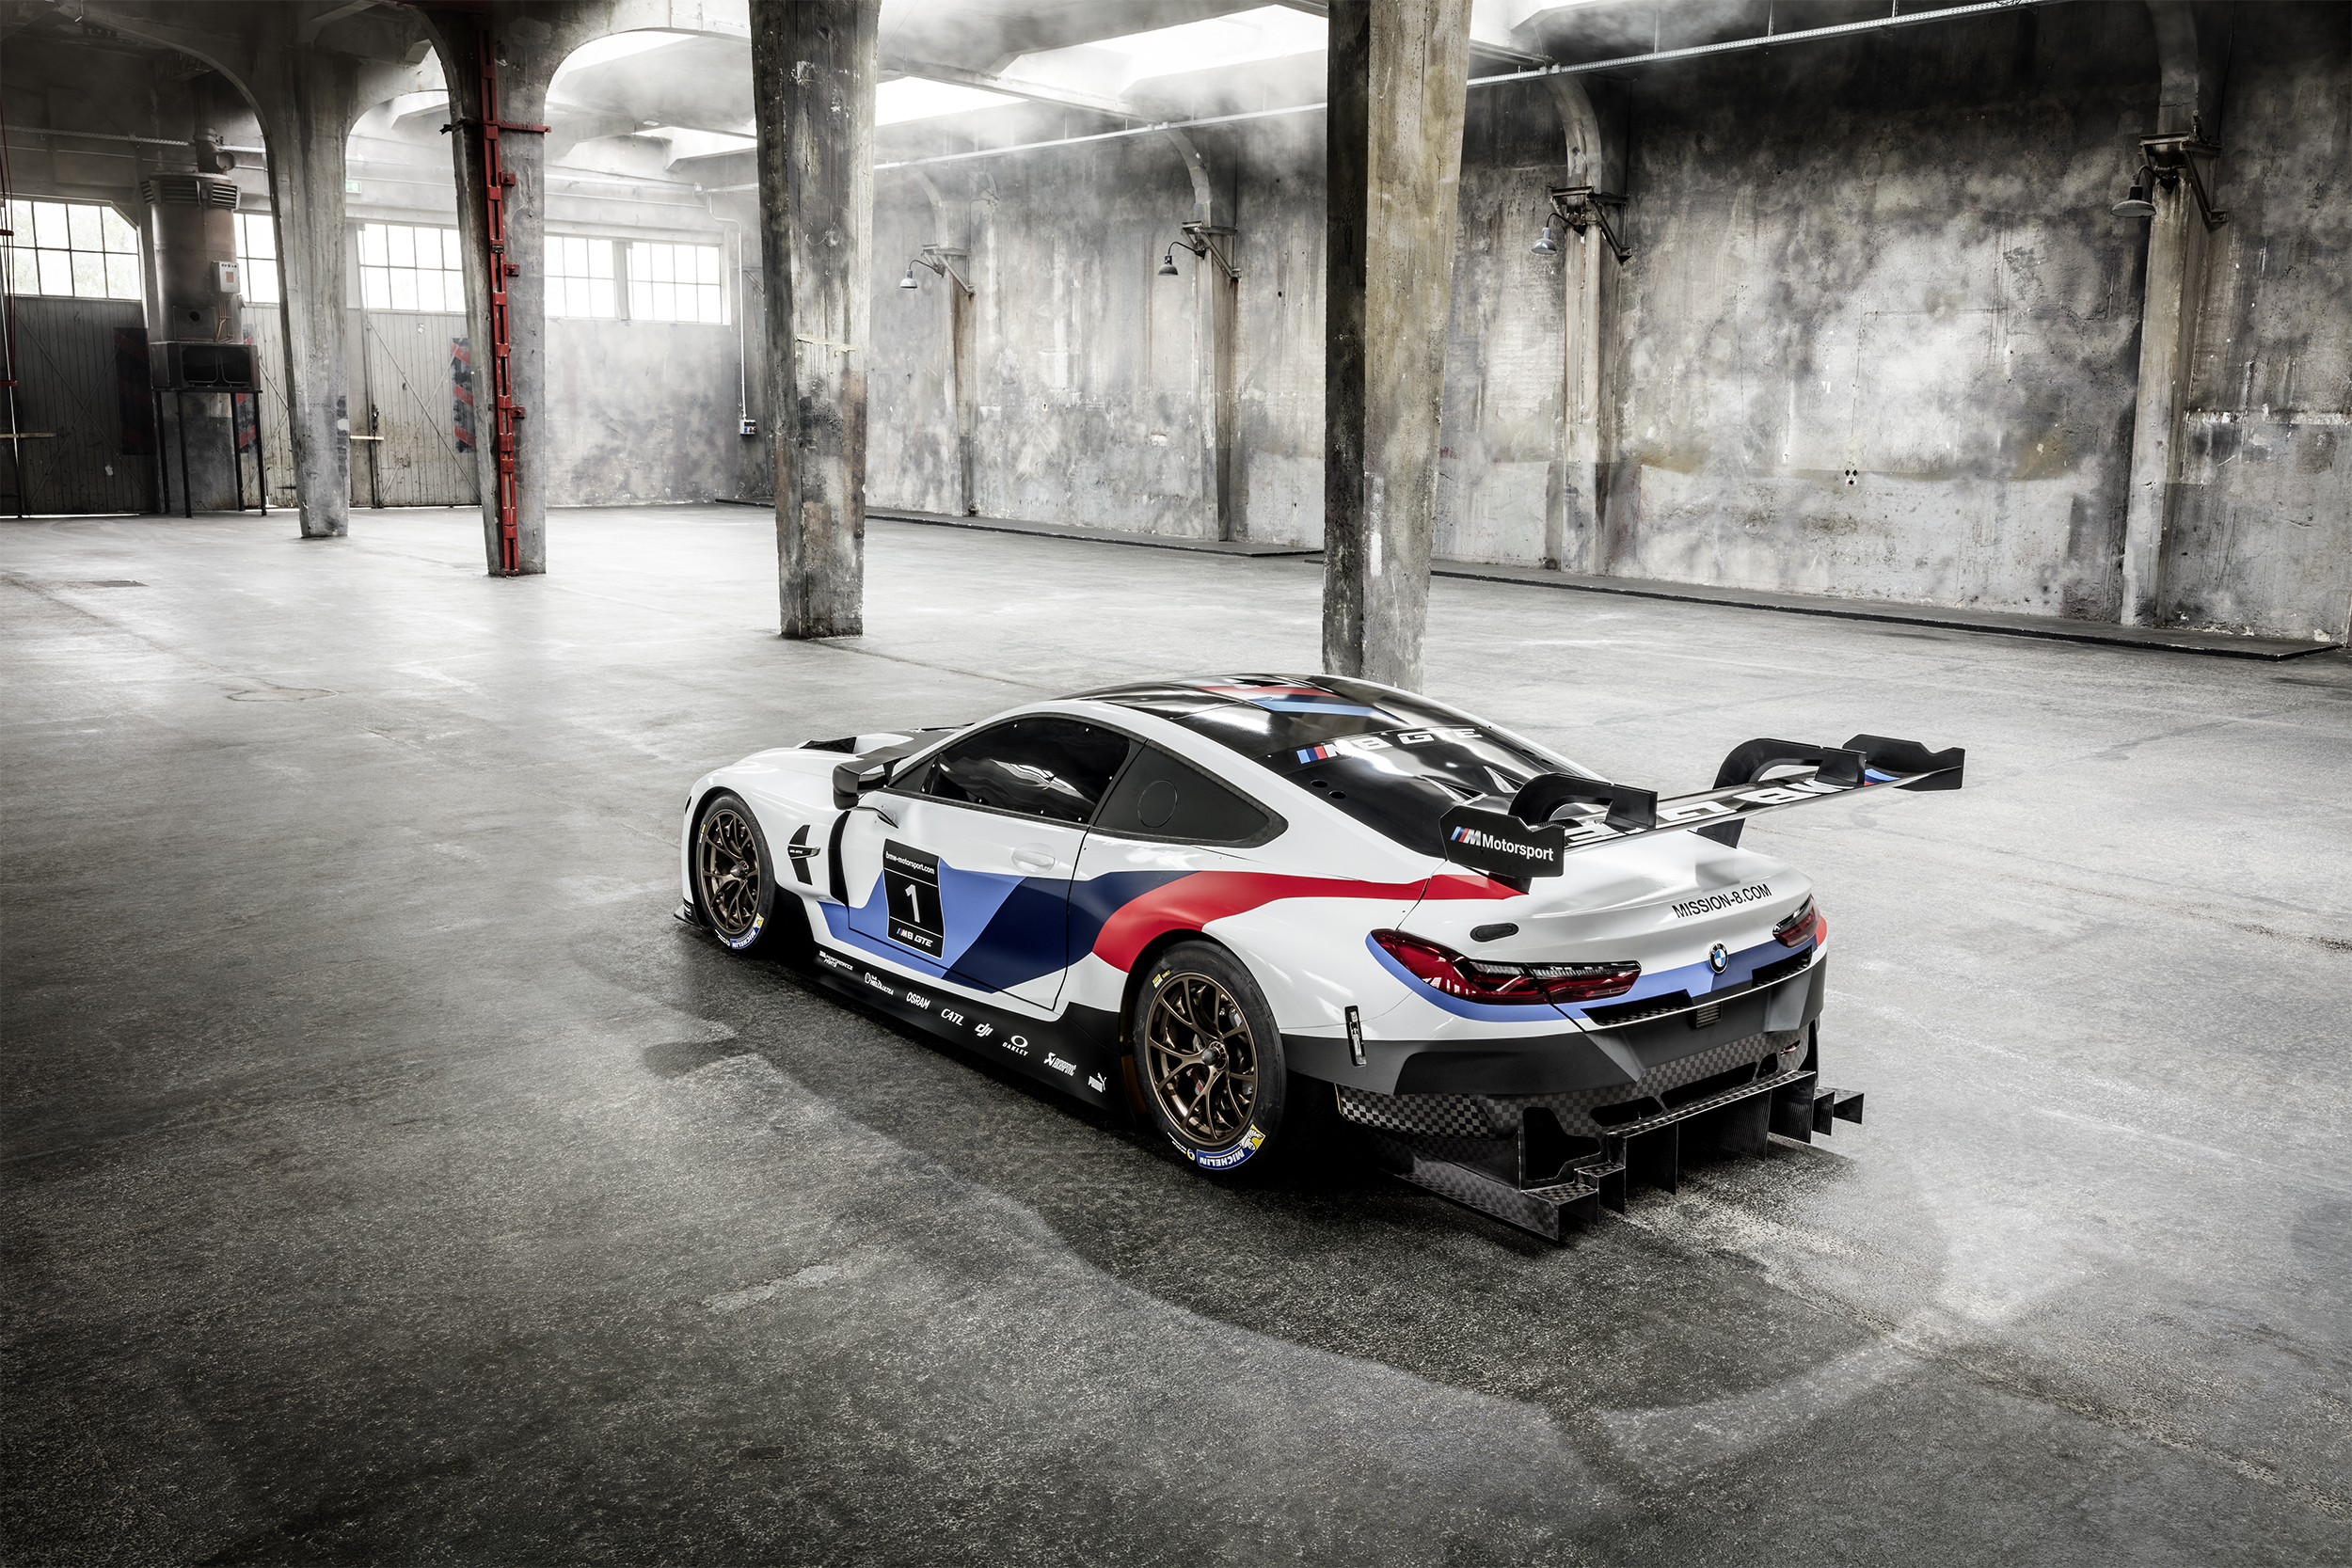 2018 BMW M8 GTE, HD Cars, 4k Wallpapers, Images ...